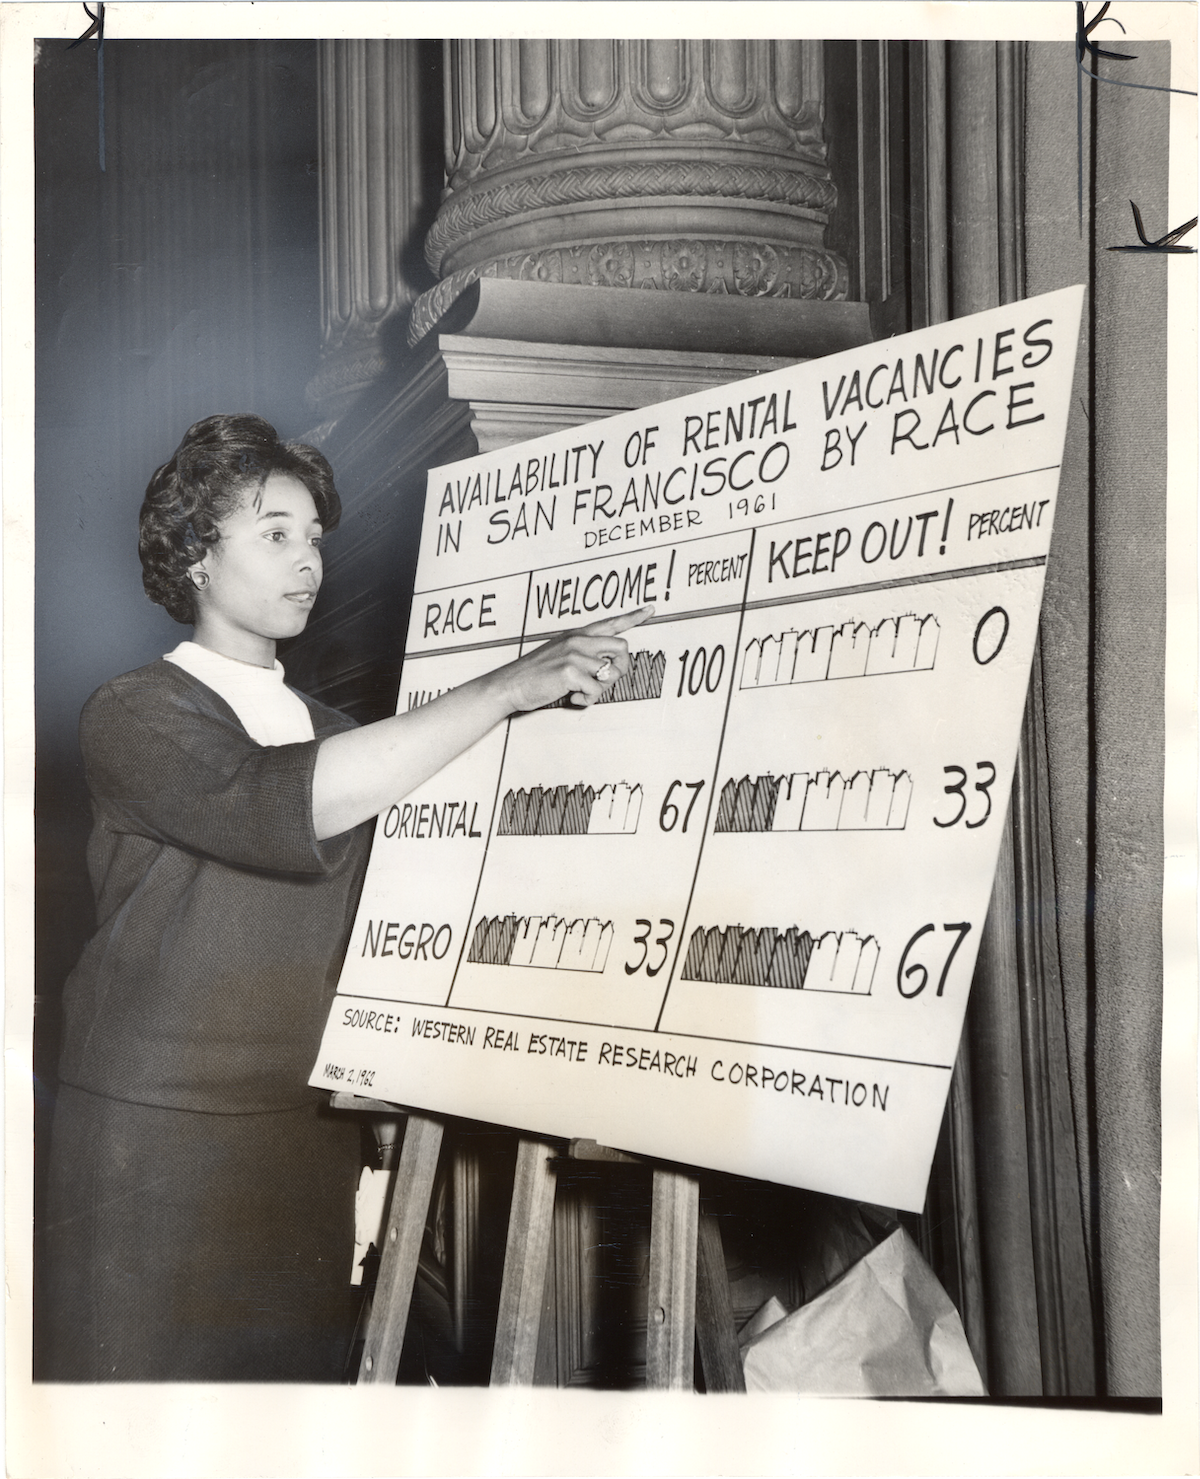 Black and white historical photo showingBerkeley teacher Miss Frances Fletcherpresents statistics gathered by the National Real Estate Research Corporation on racial discrimination in San Francisco's rental housing marketshowing that two-thirds of landlords refused to rent to African Americans in 1962